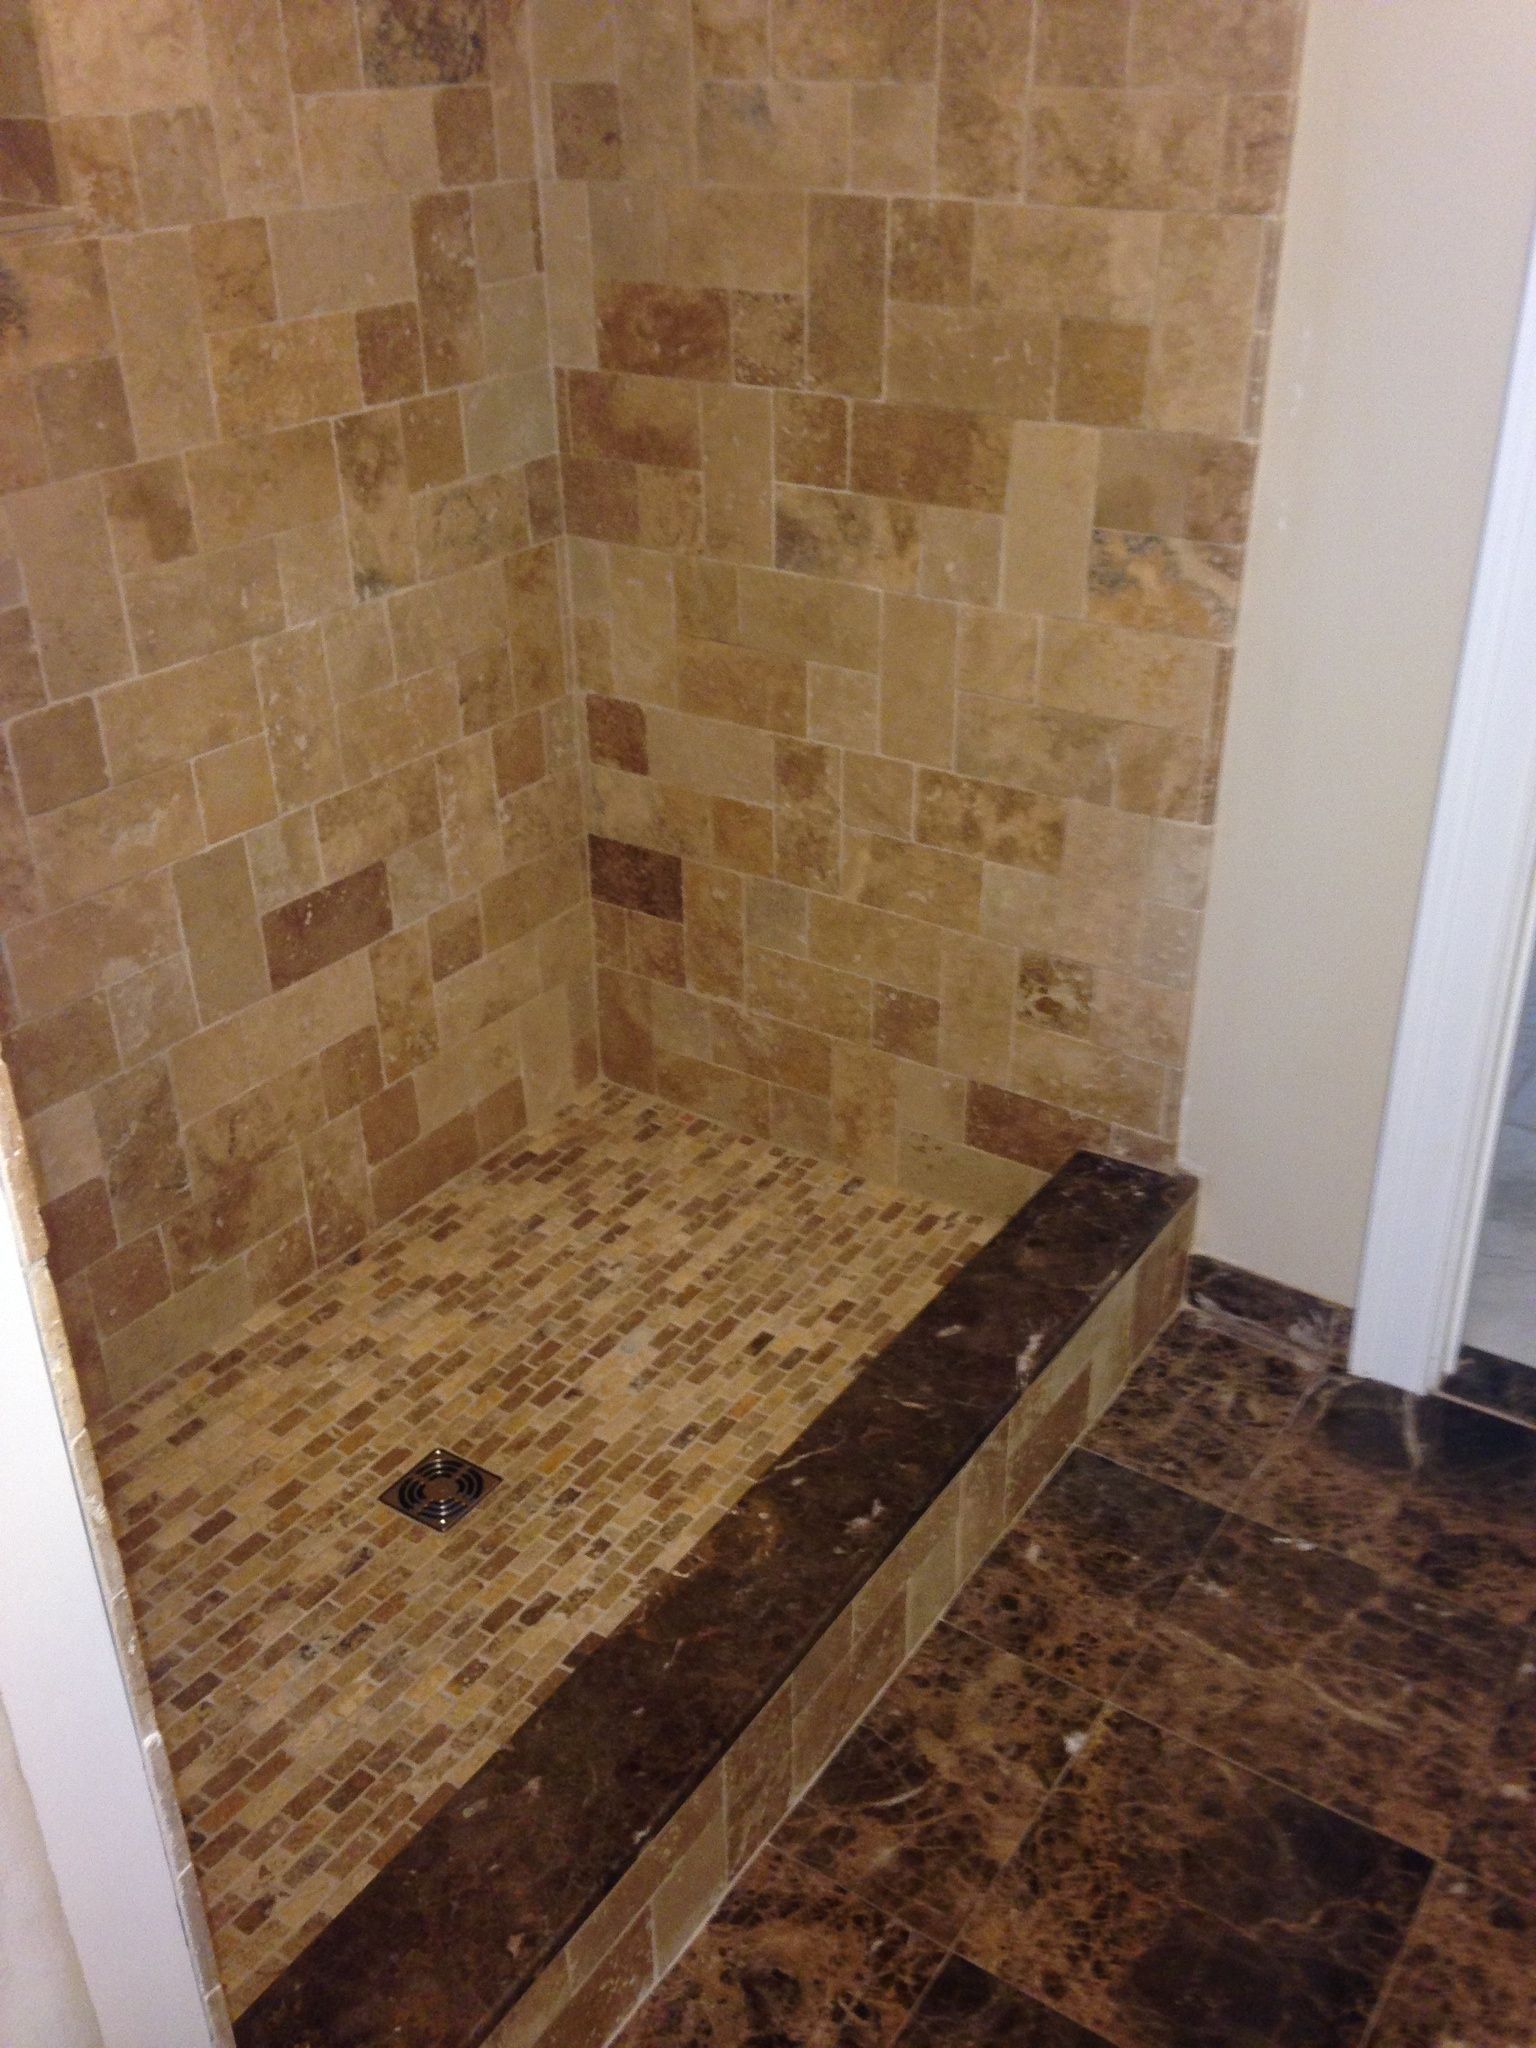 Earthstone Travertine Shower With Tuscany Scabos Mosaic Shower Floor,  Schluter Brushed Nickel Drain And Custom